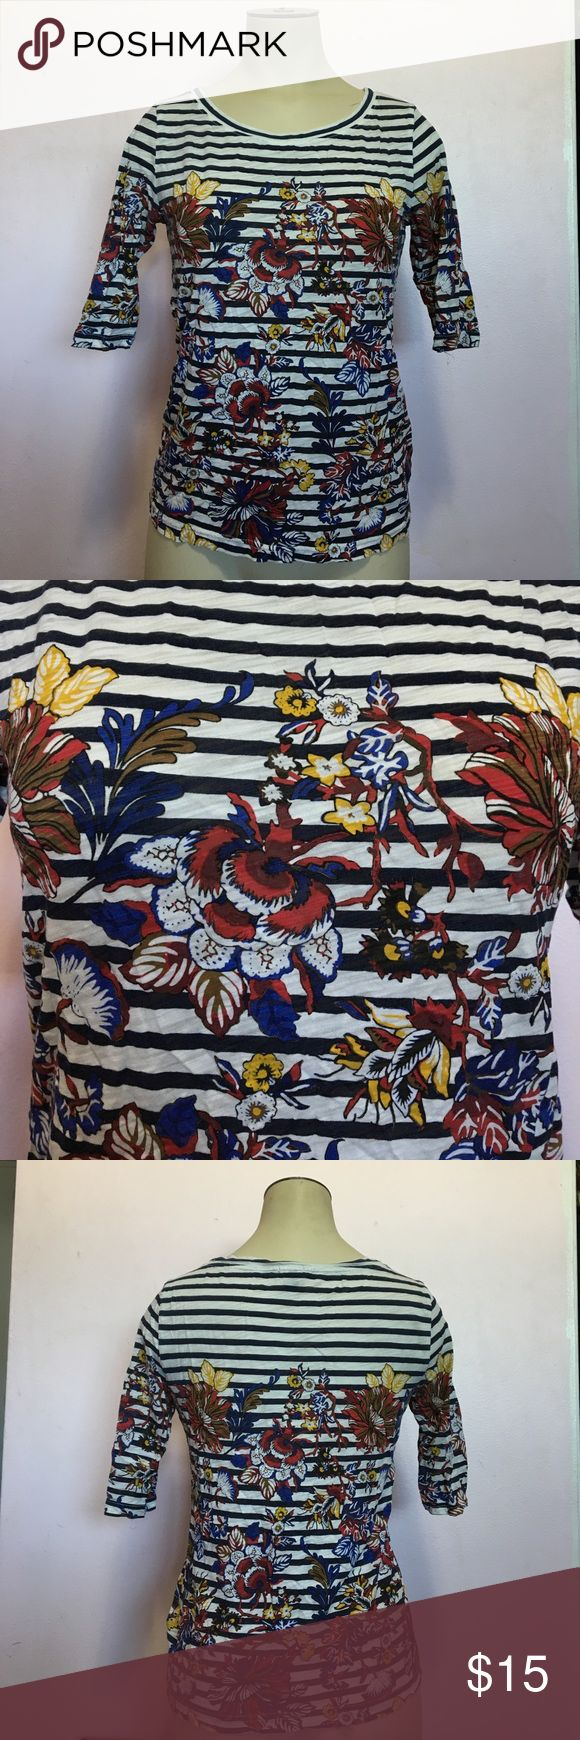 Patterned J. Crew Top good condition, worn a few times. a little wrinkly from being in storage, has a couple loose threads. (ML) J. Crew Tops